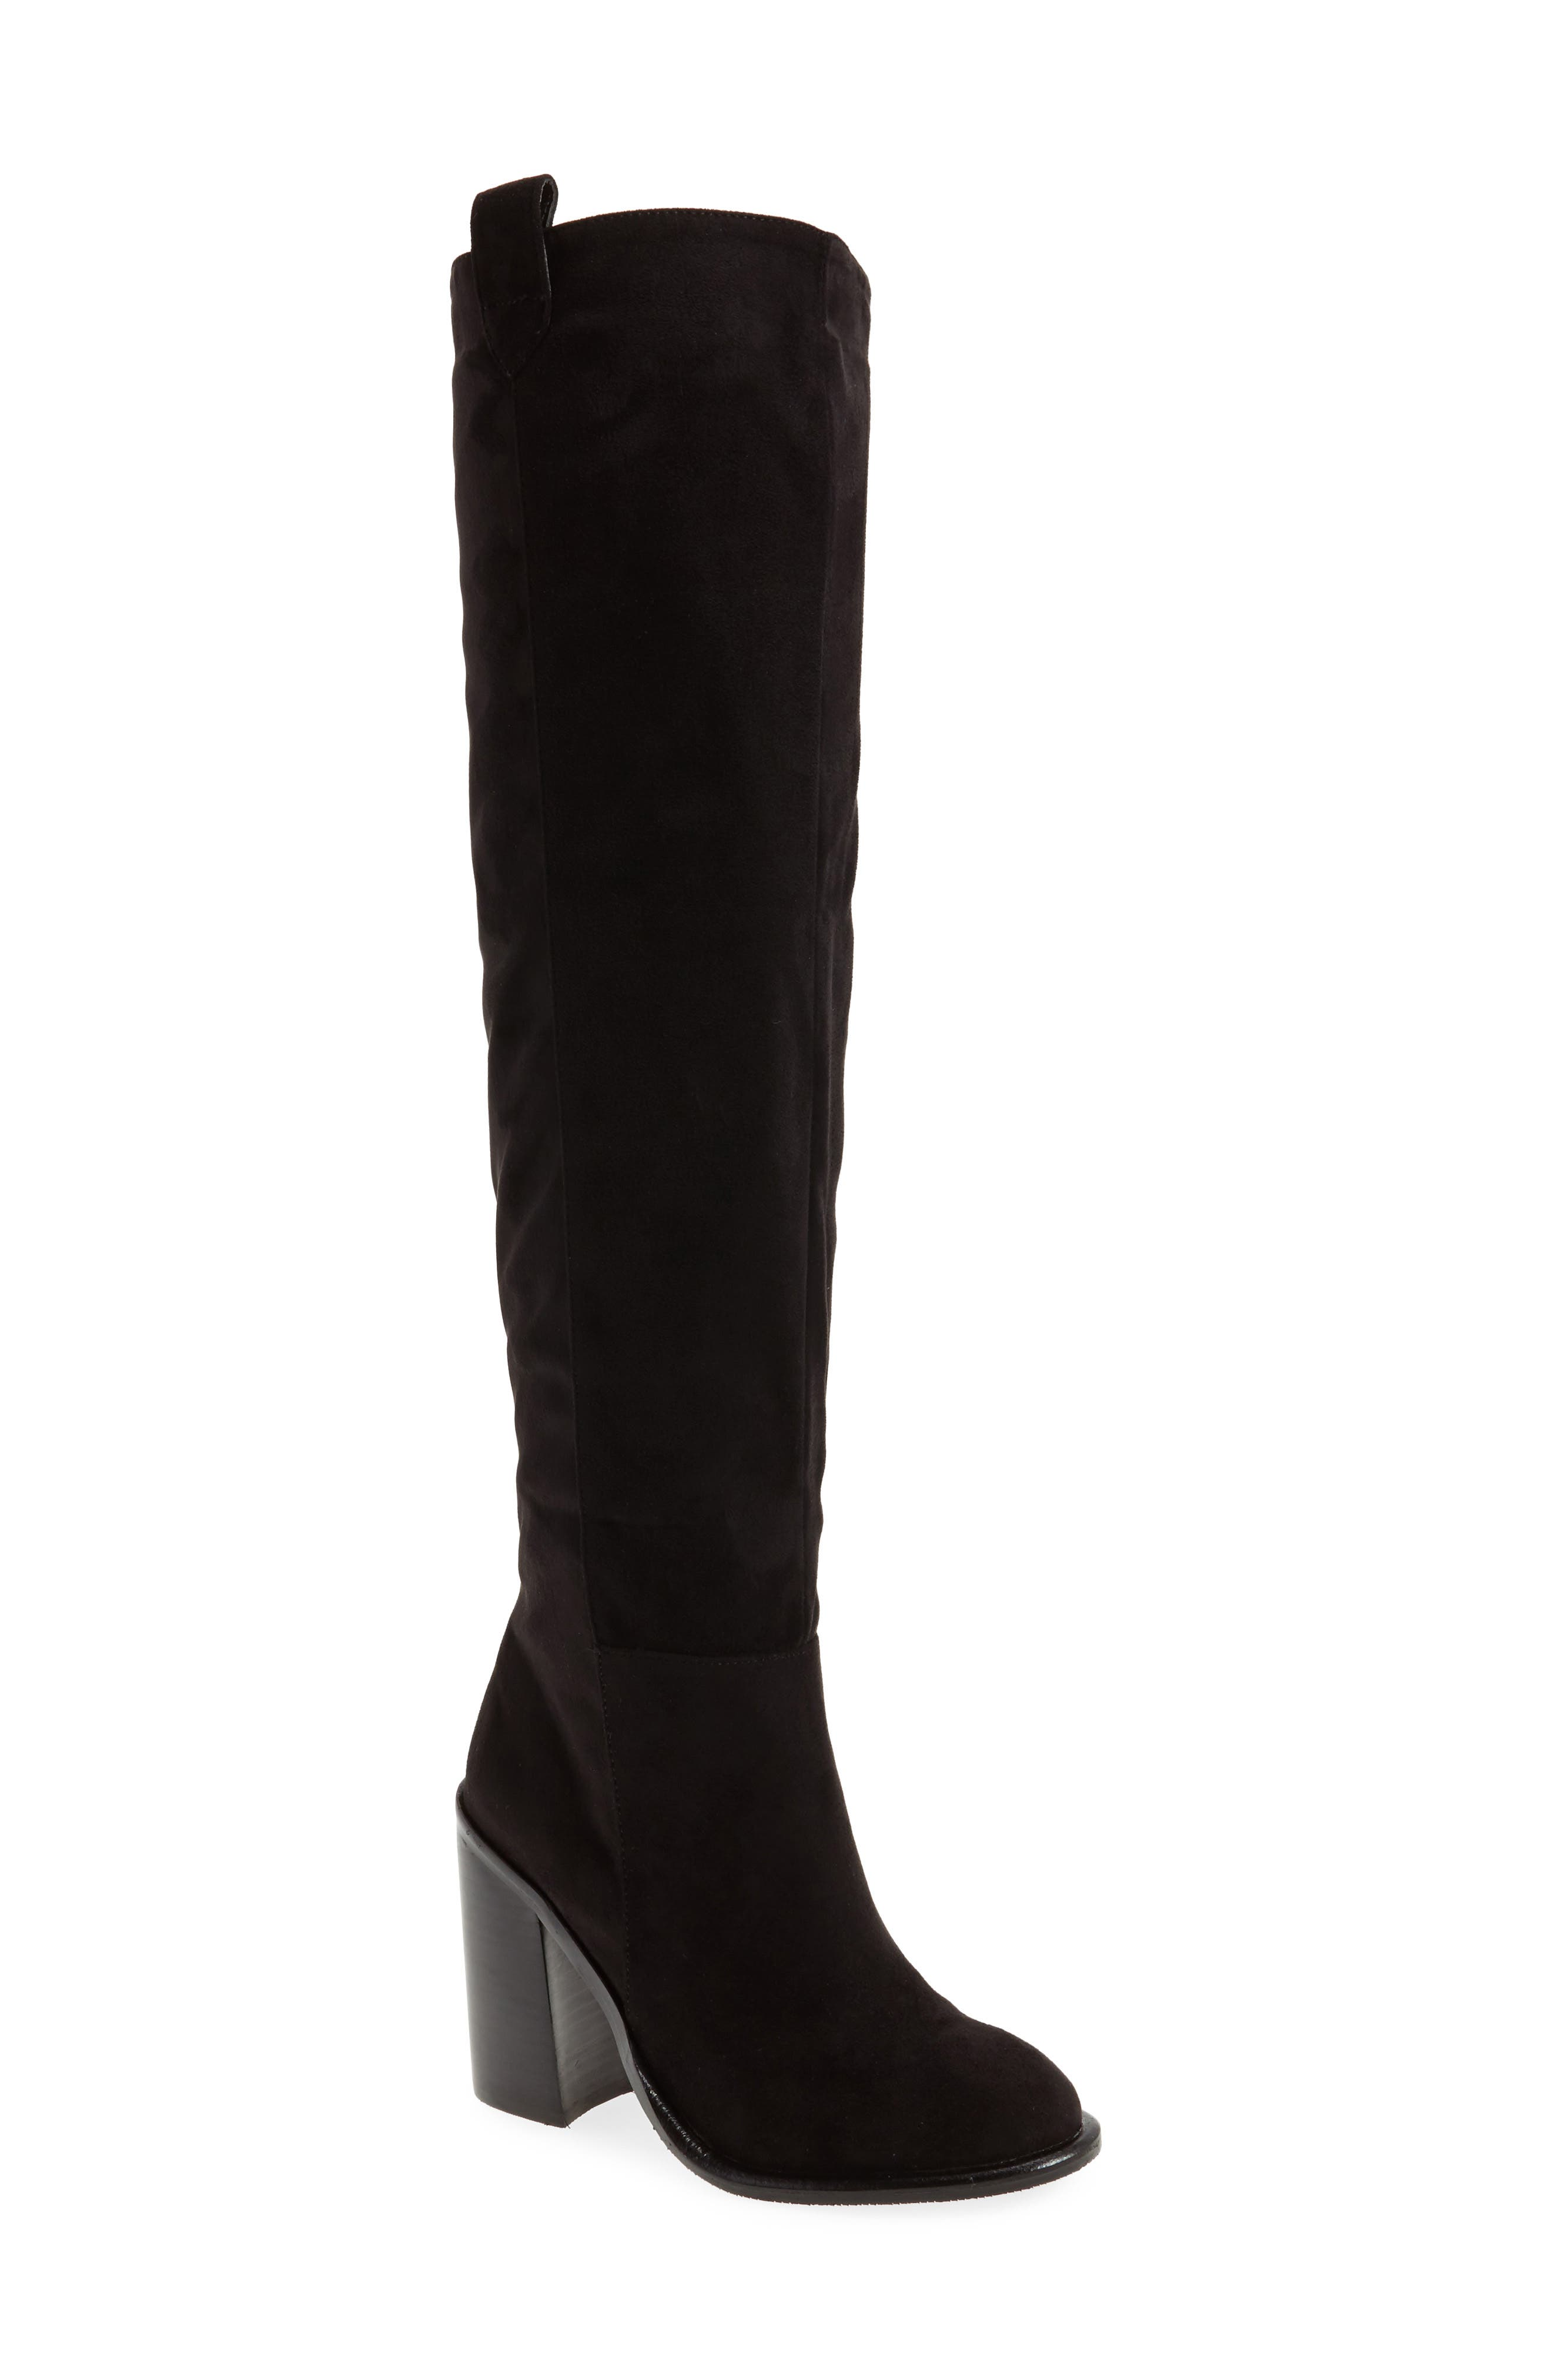 Nate Over the Knee Boot,                             Main thumbnail 1, color,